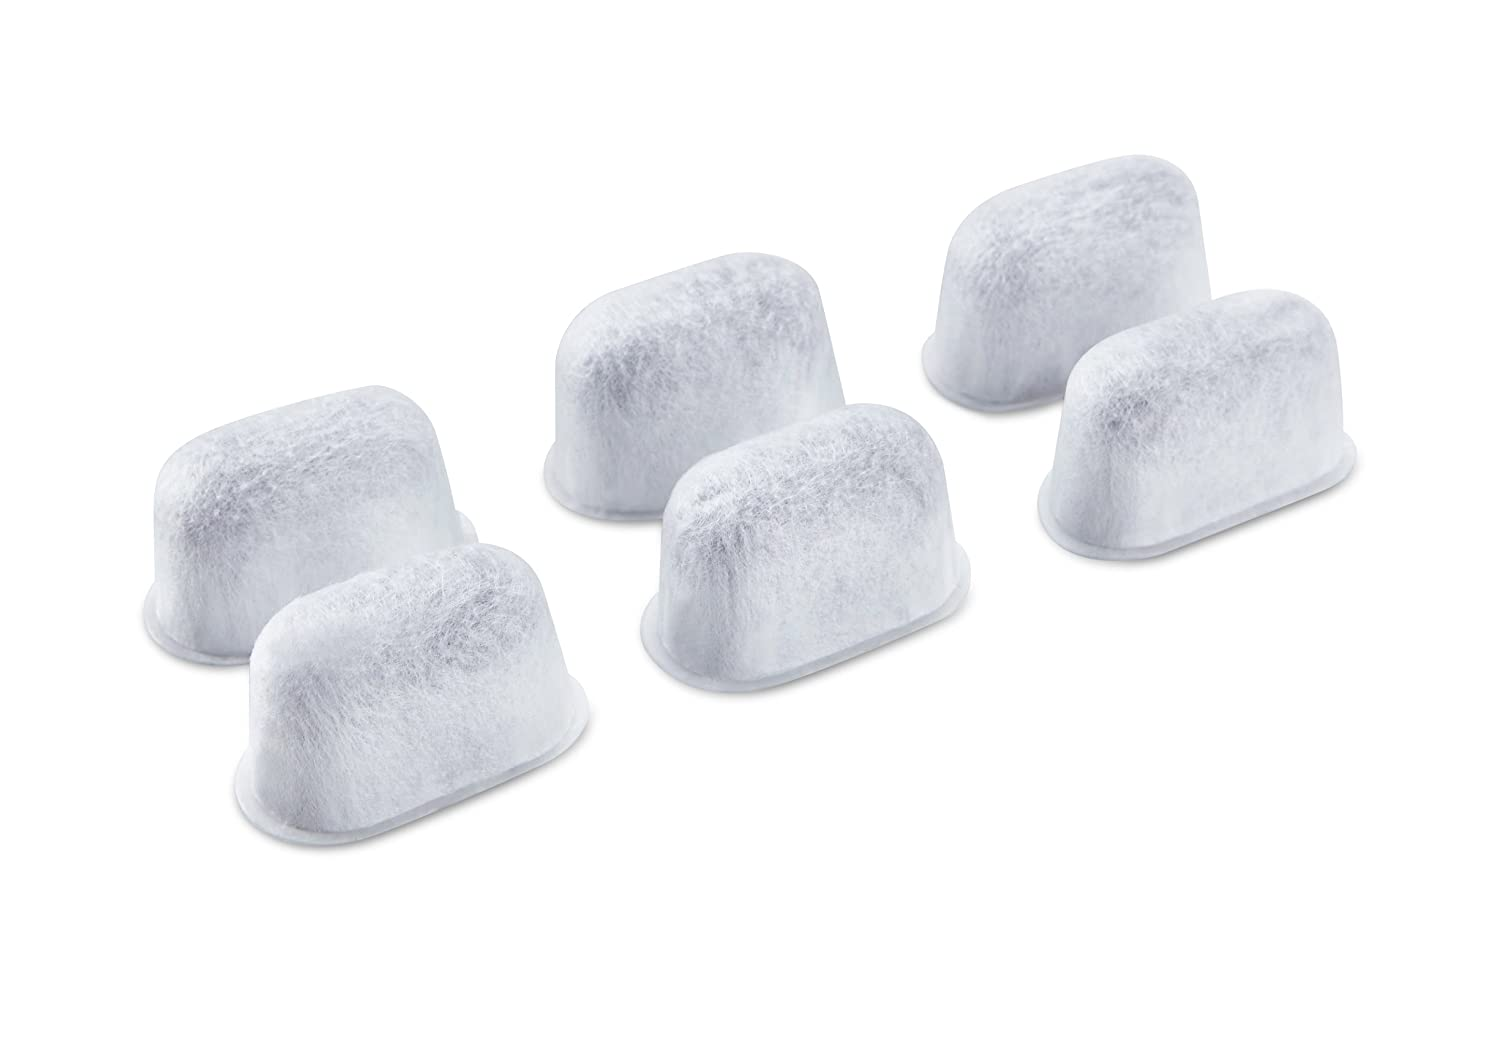 Premium 6-Pack Replacement Charcoal Water Filters for Keurig Coffee Machine